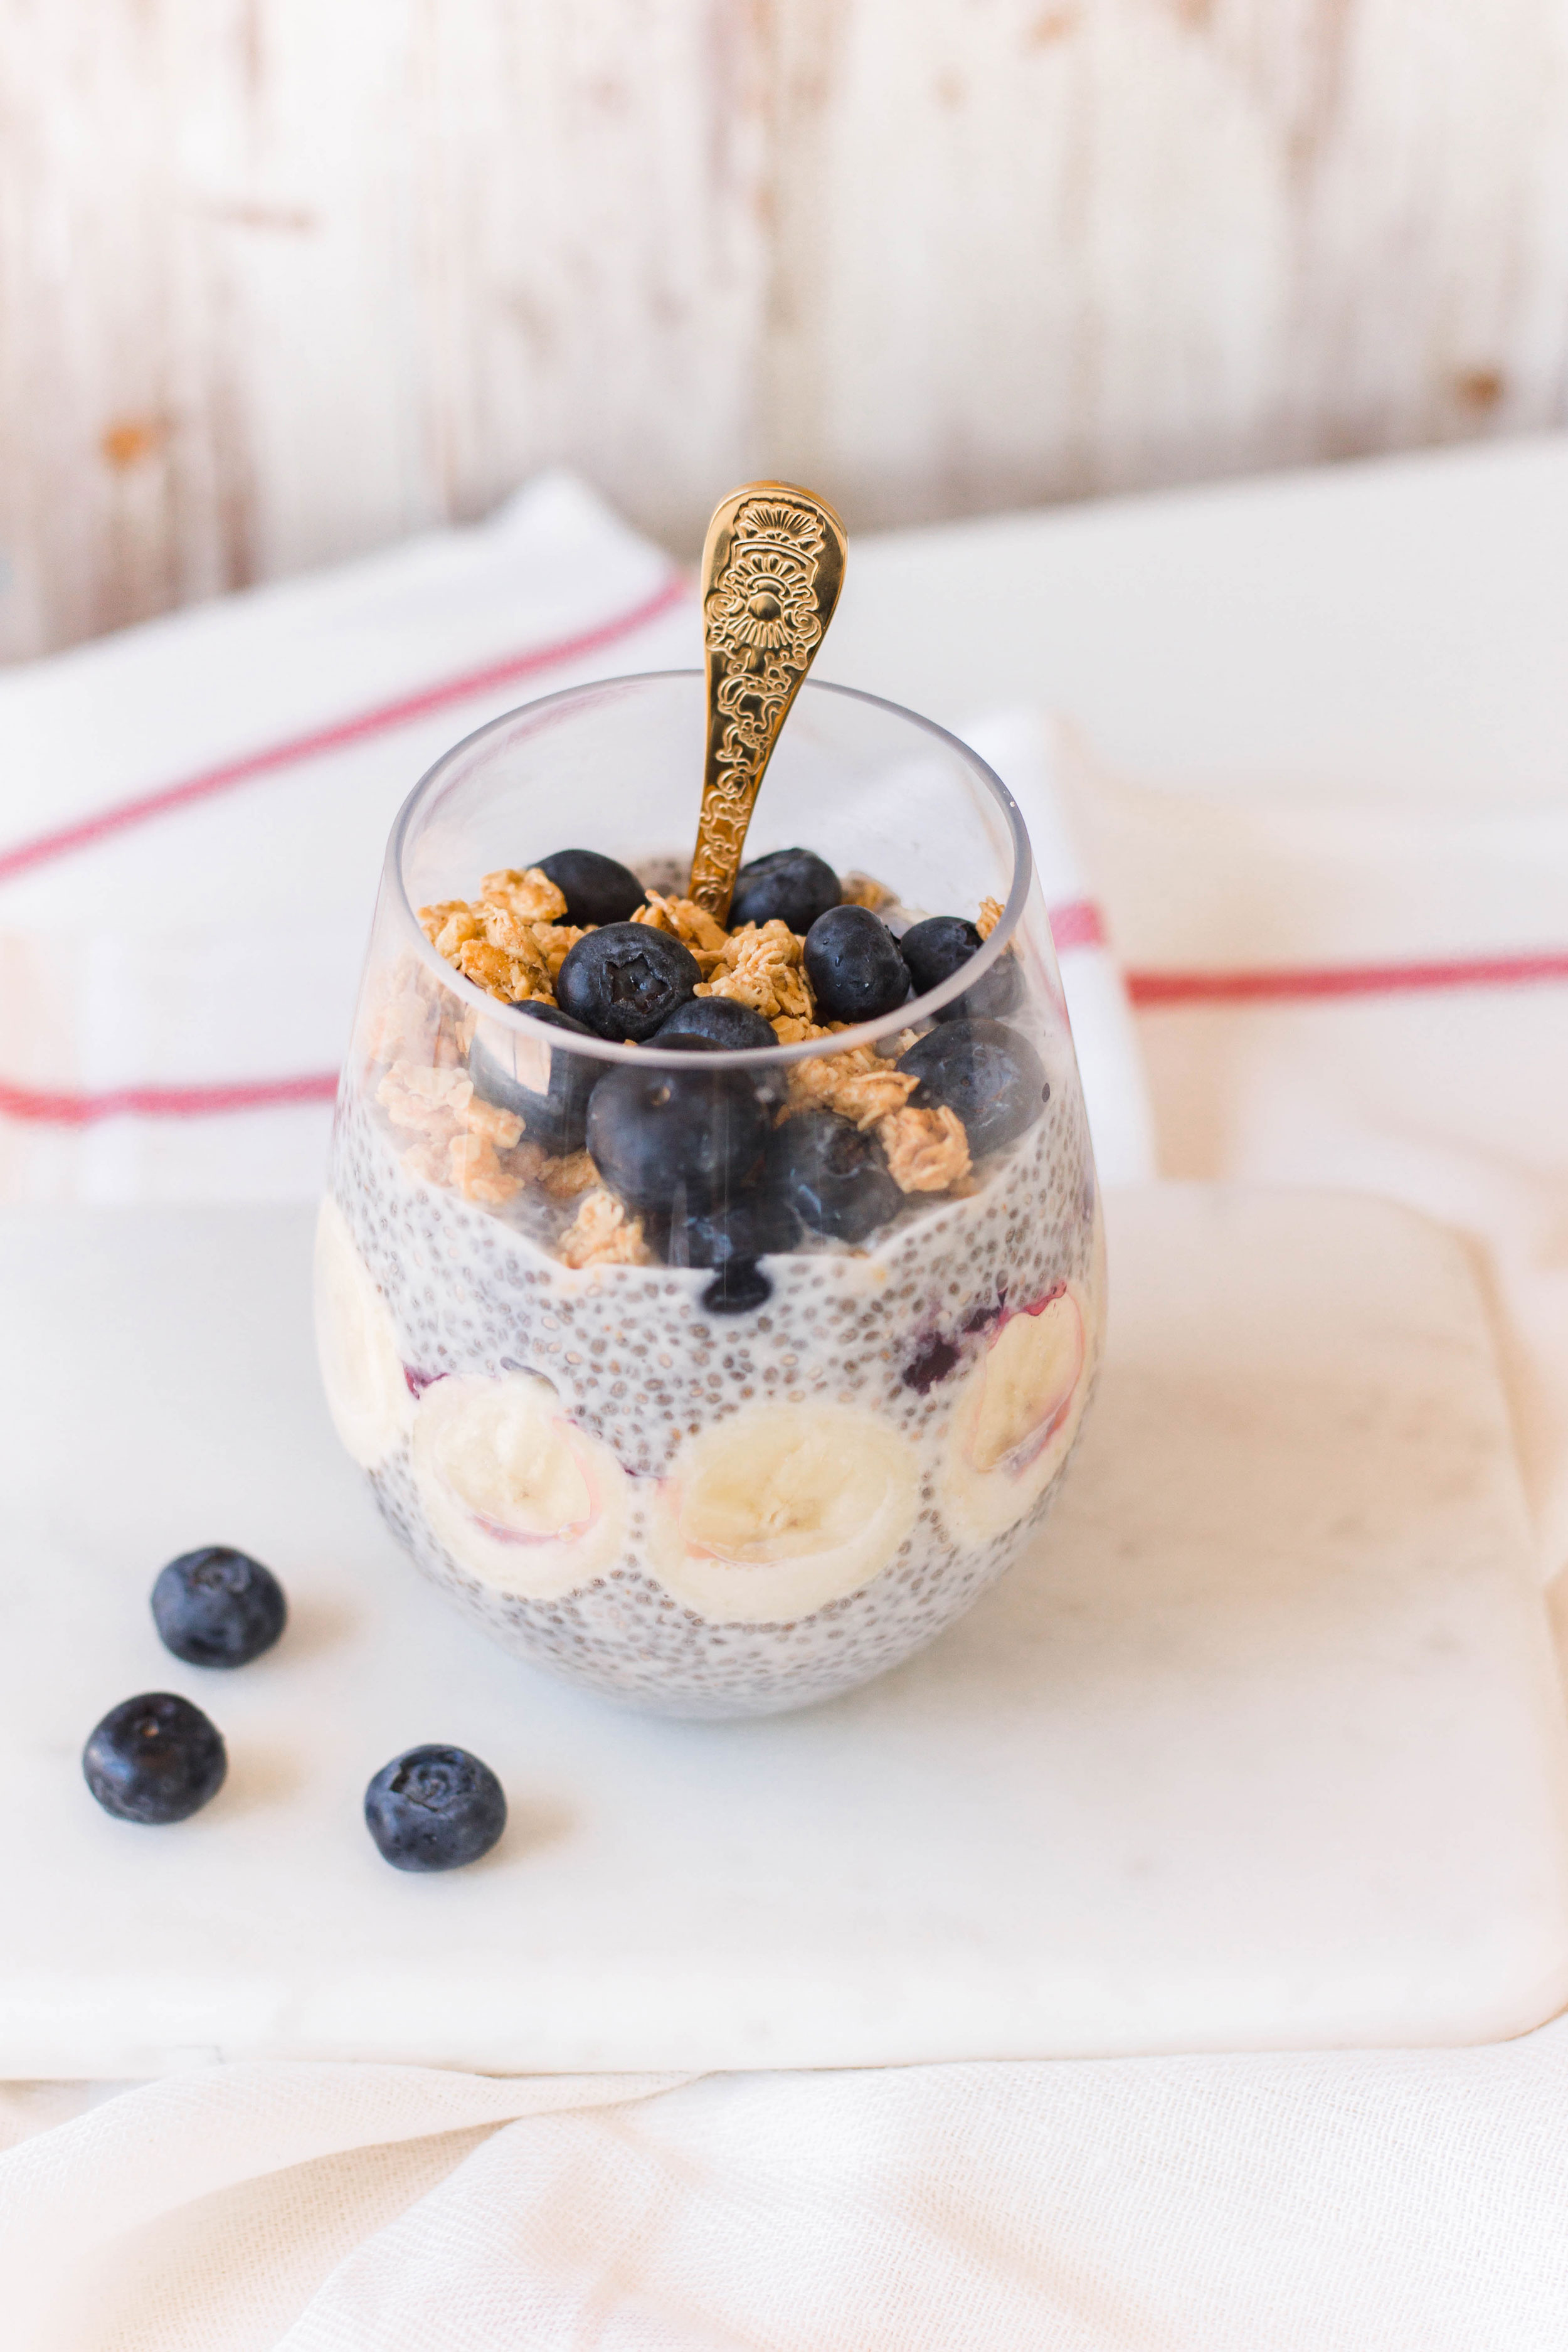 Today, we're proud to present 20 of the most delicious overnight breakfast recipes - ready for you when you wake up, to give you an easier morning! #breakfastsolutions